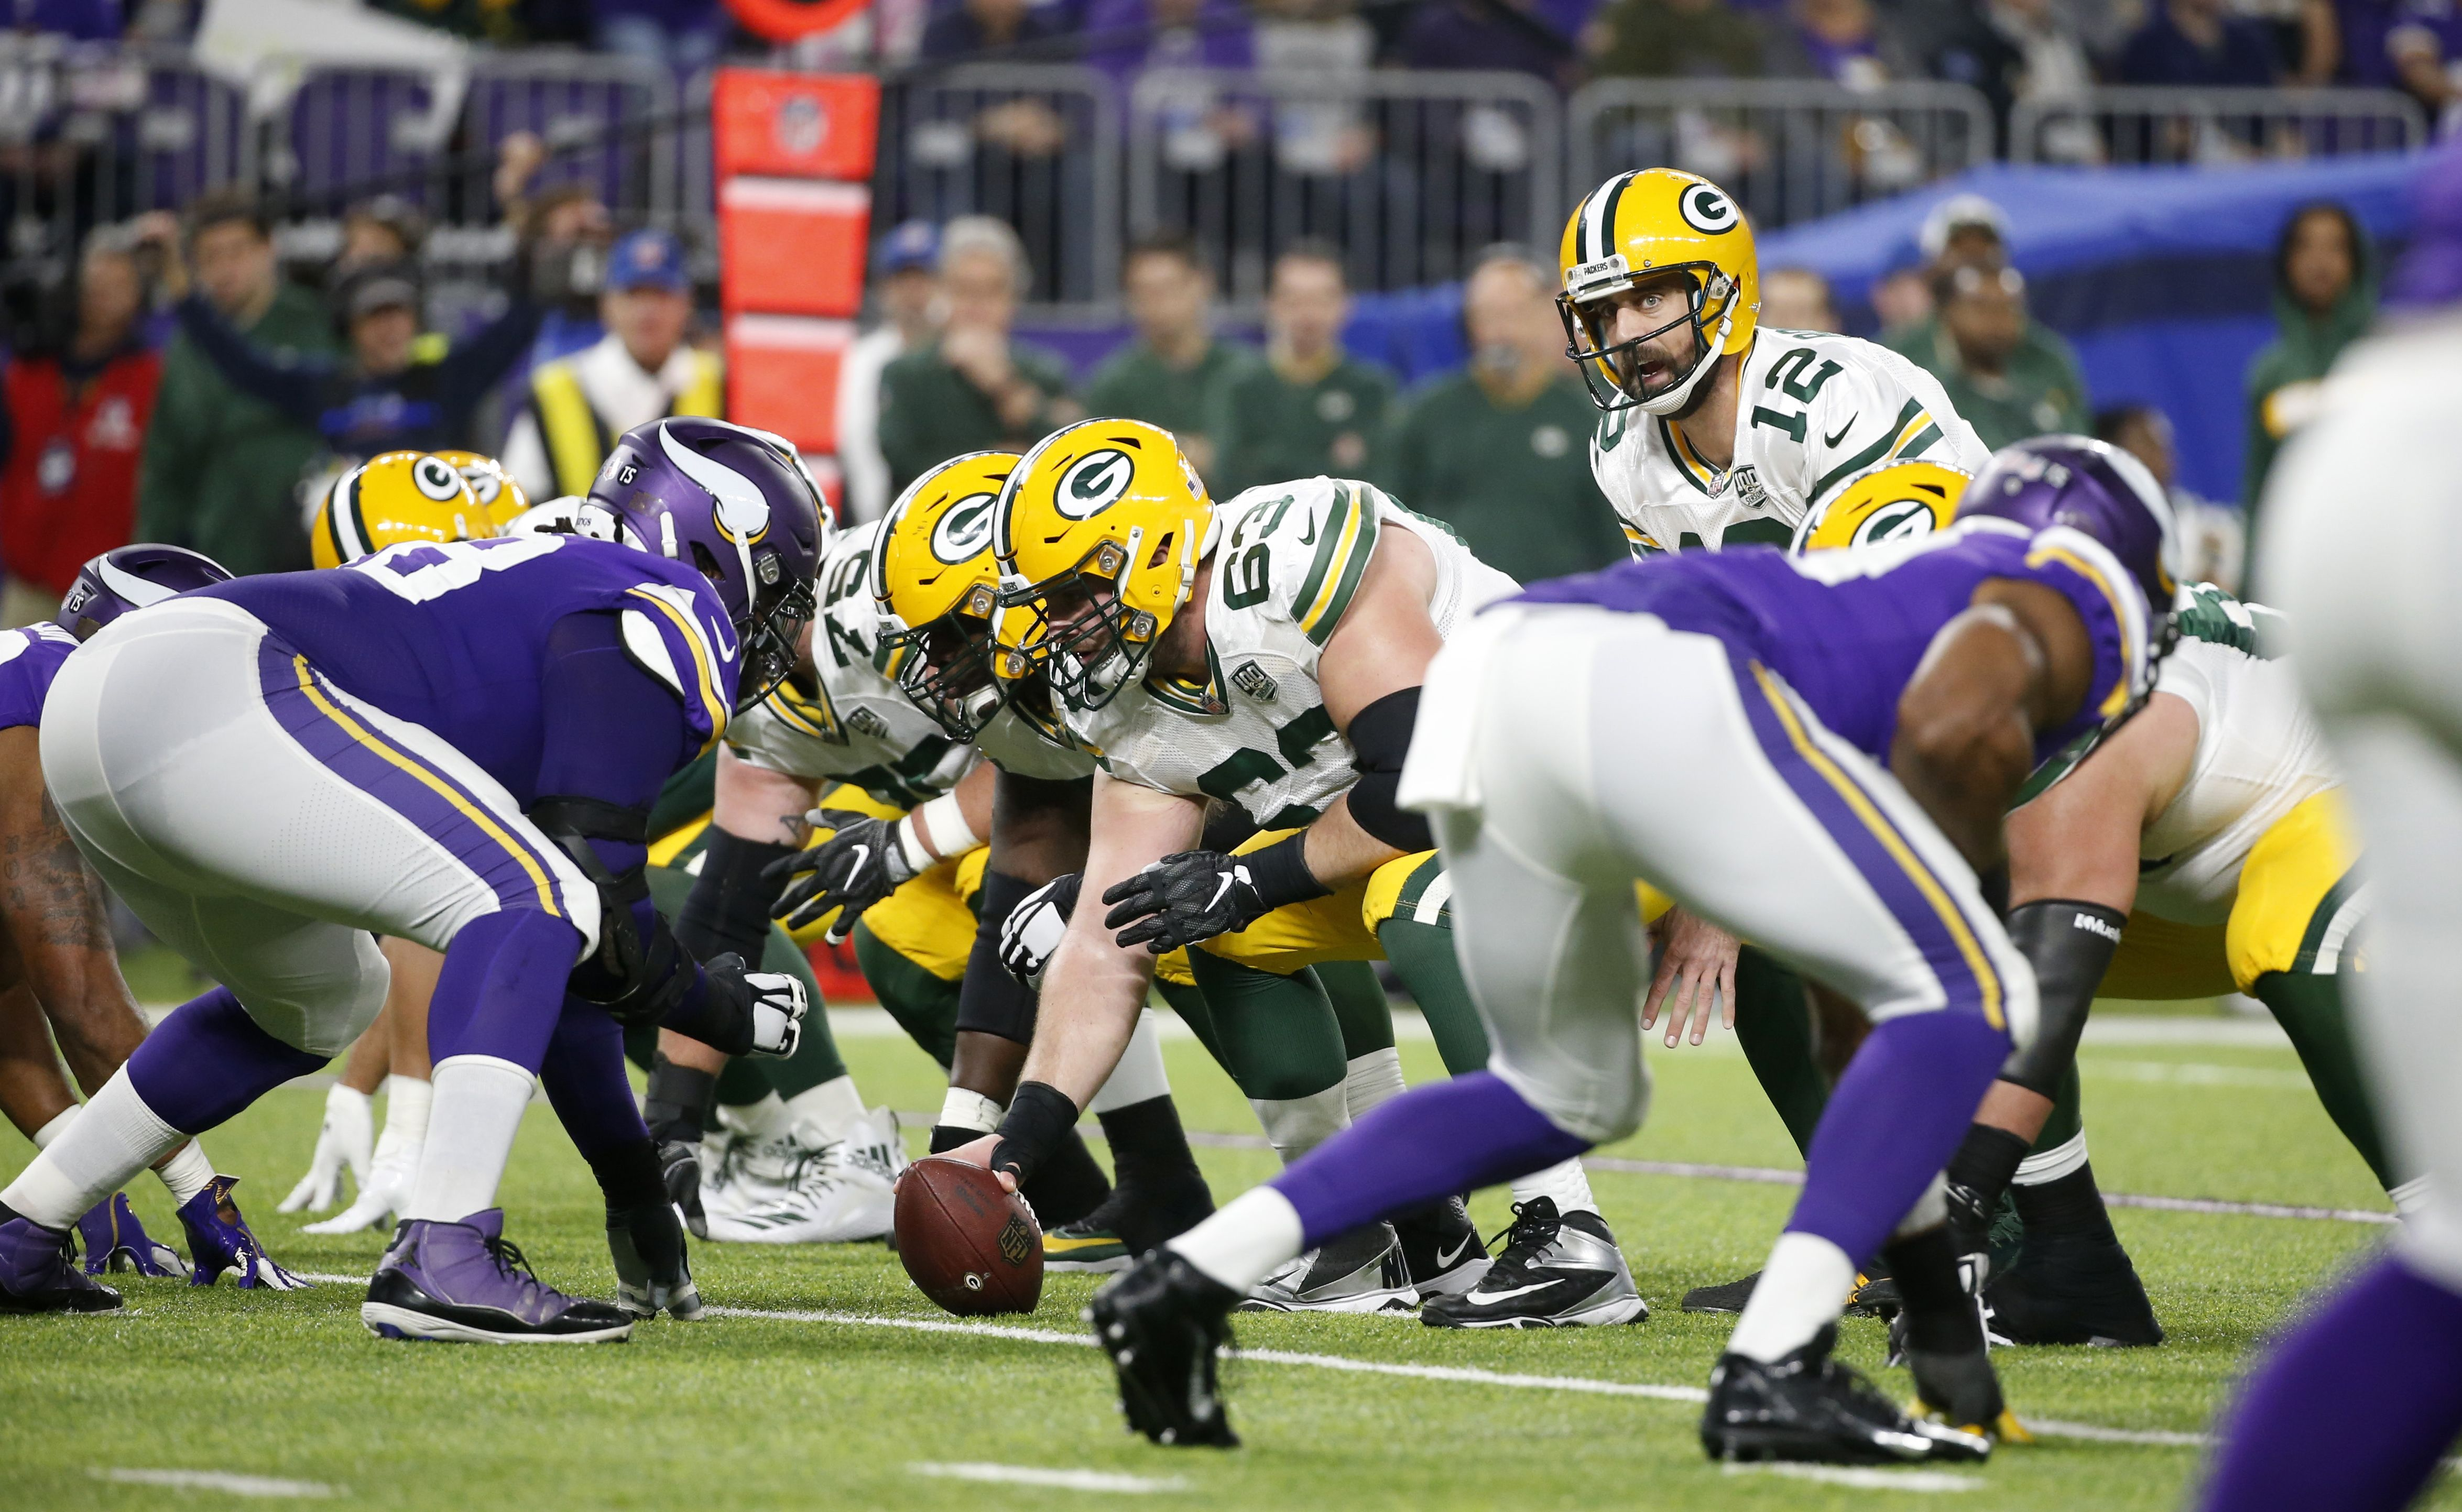 Watch Online Minnesota Vikings Vs Green Bay Packers Live Streaming For Free The Best Place To Find A Live Stream To Watch The Match Betw